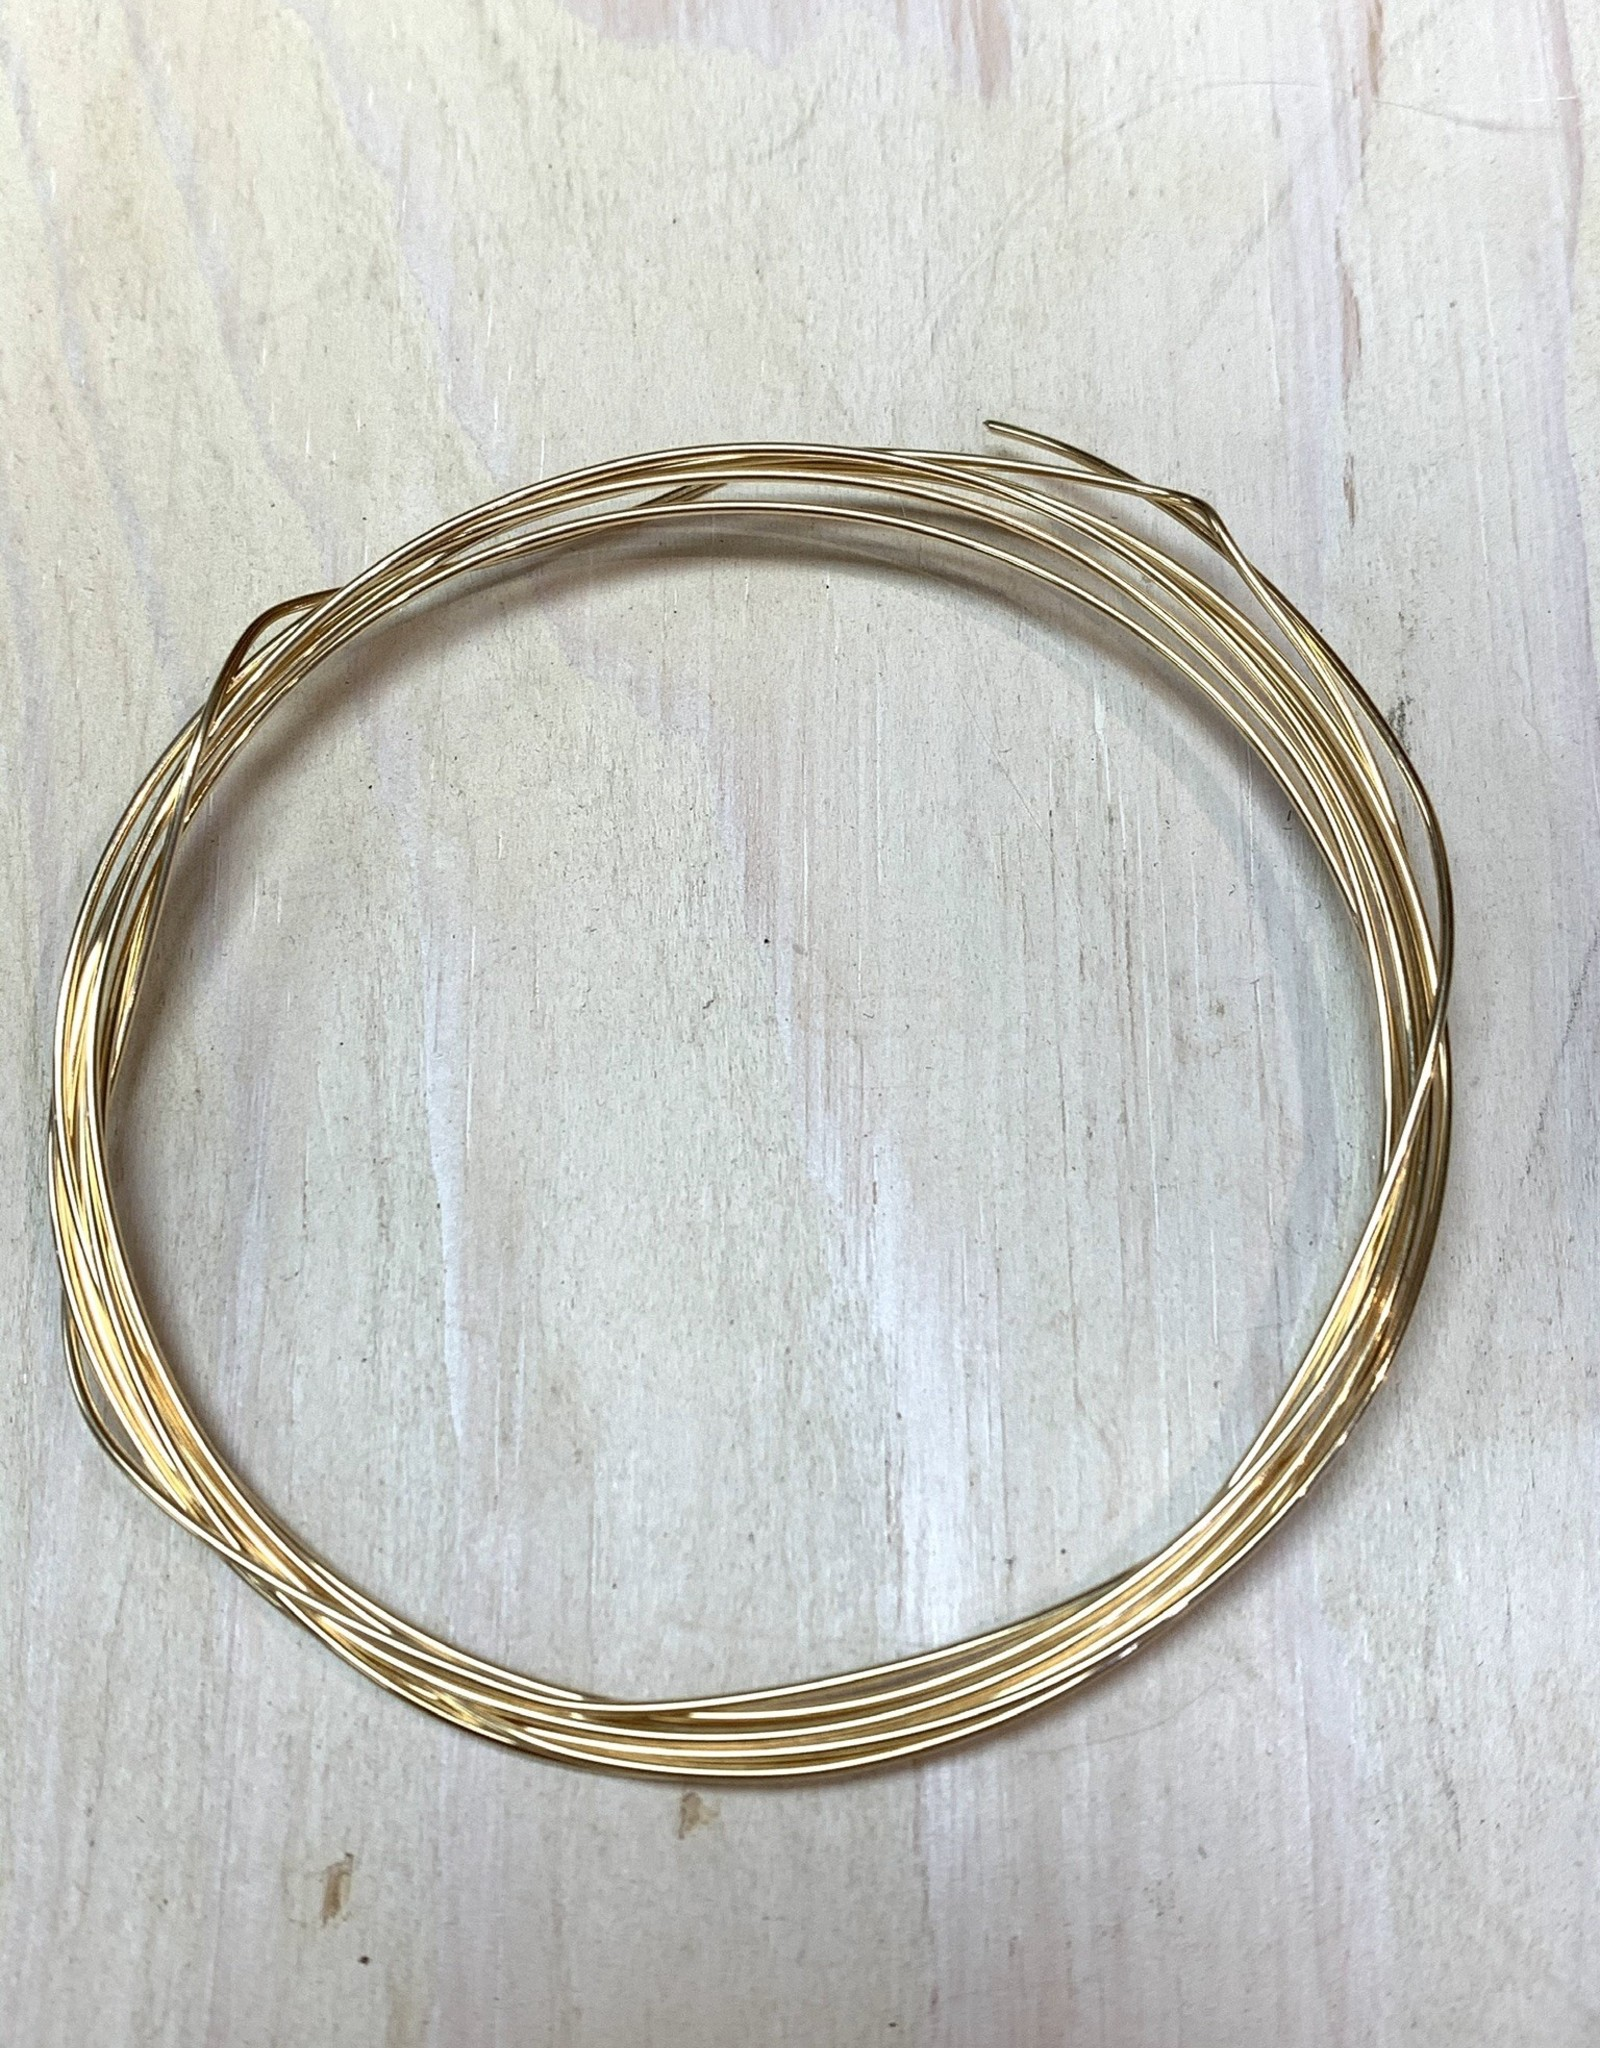 18ga Round Wire 14k Gold Filled HH 1/2oz